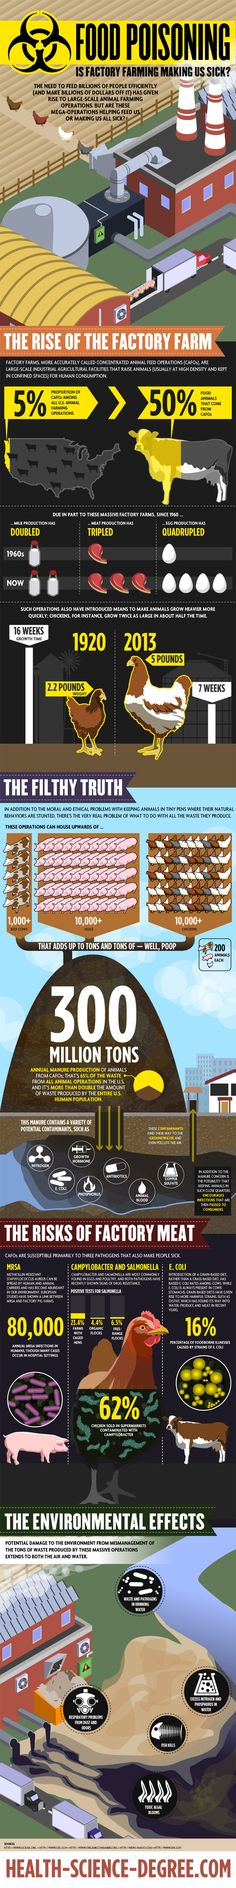 Risks of Factory Farming : Overconsumption of meat by humans during the last decades has led to the development of large scale animal farming plants for the sake of massive animal food production. But overdoing with nature sooner or later ends up with detrimental effects on earth's ecosystem.  > http://infographicsmania.com/risks-of-factory-farming/?utm_source=Pinterest&utm_medium=ZAKKAS&utm_campaign=SNAP